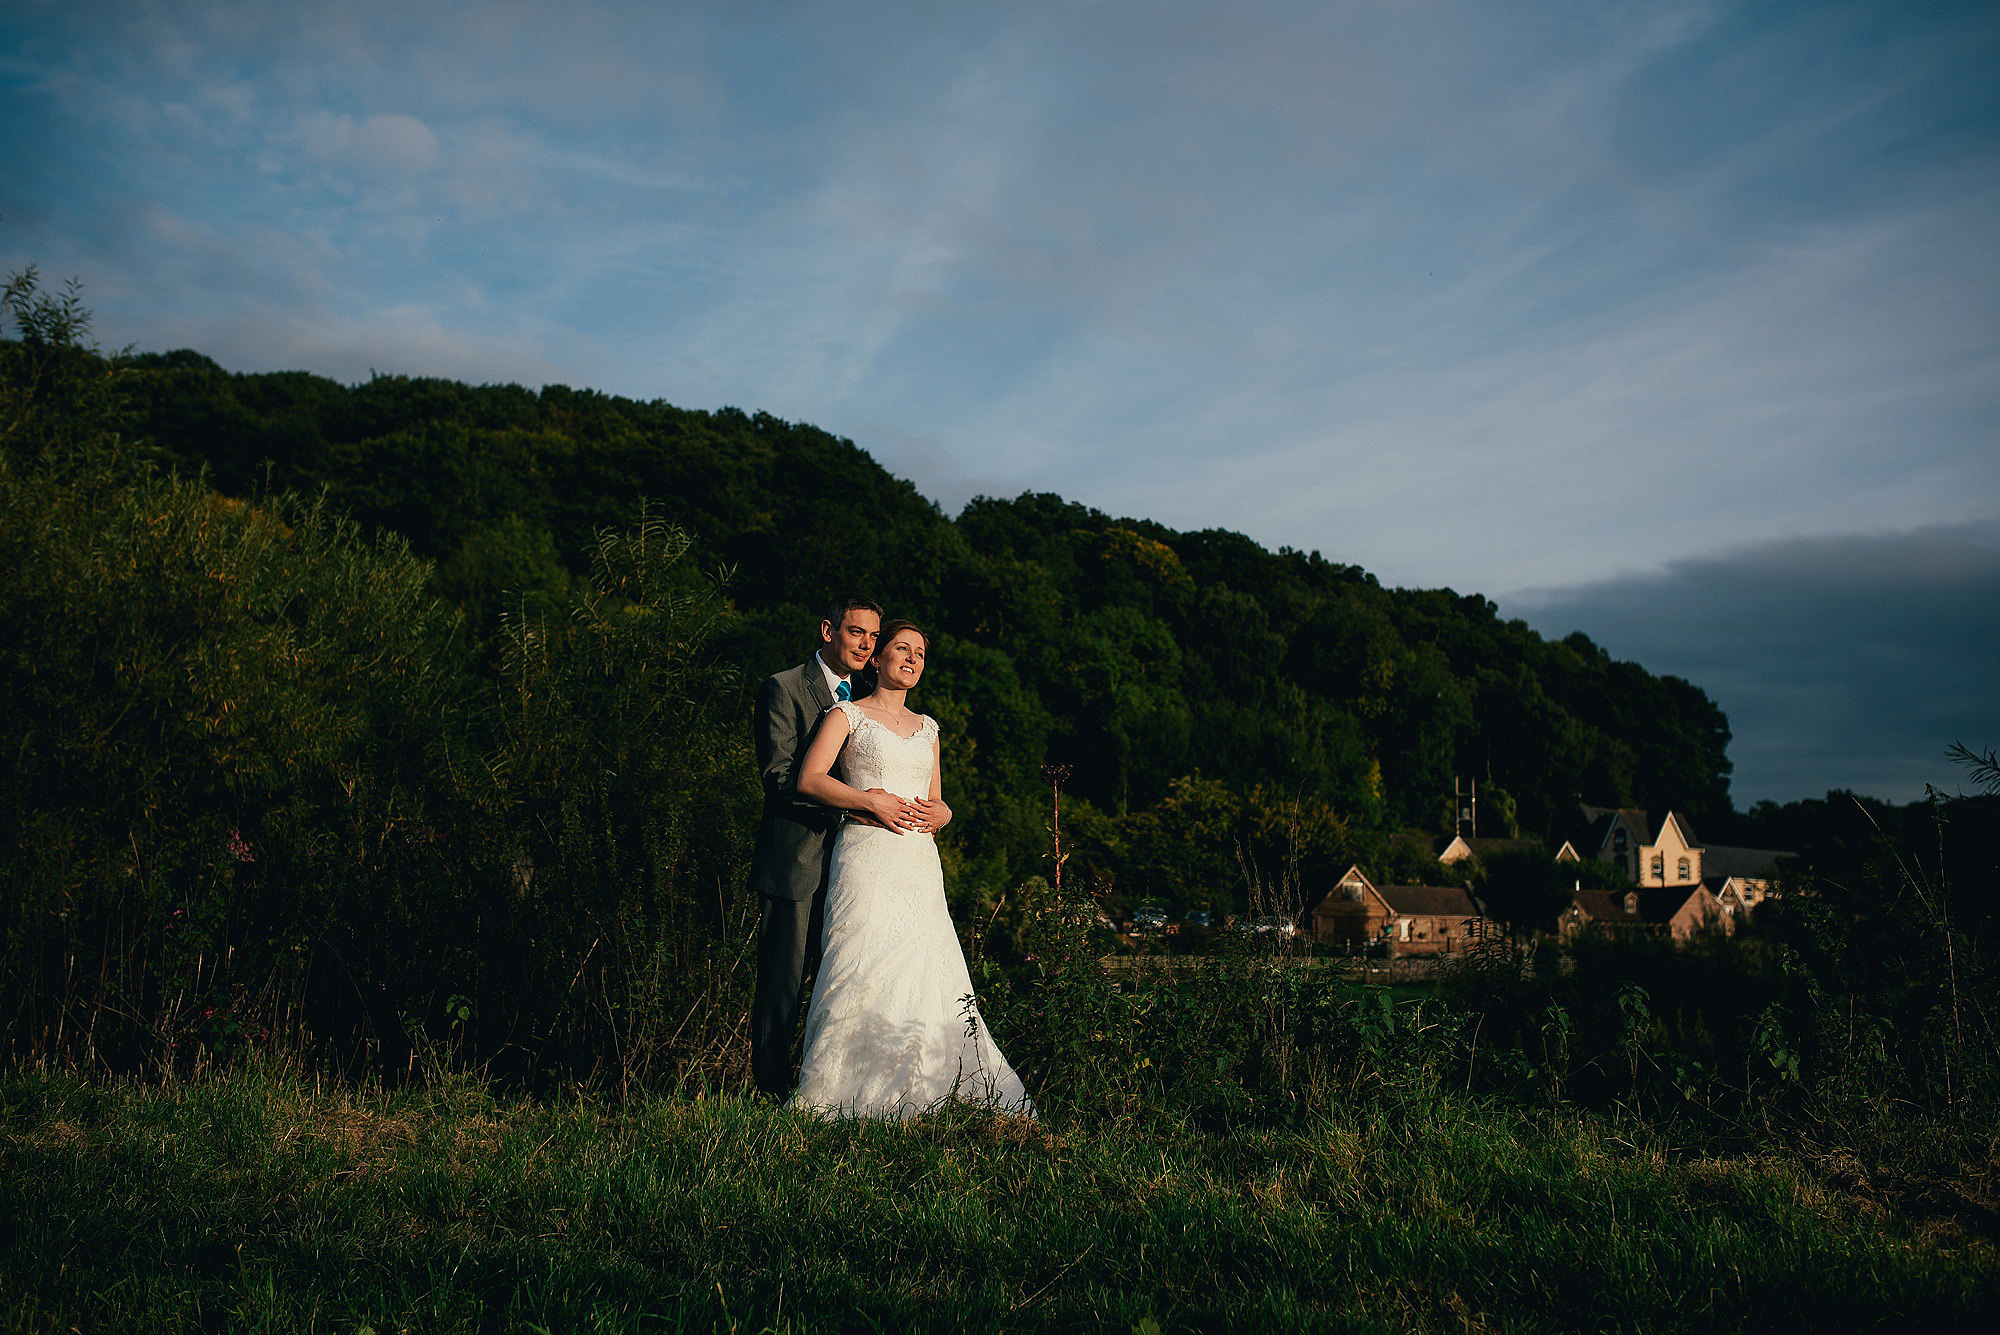 Relaxed wedding couple portraits